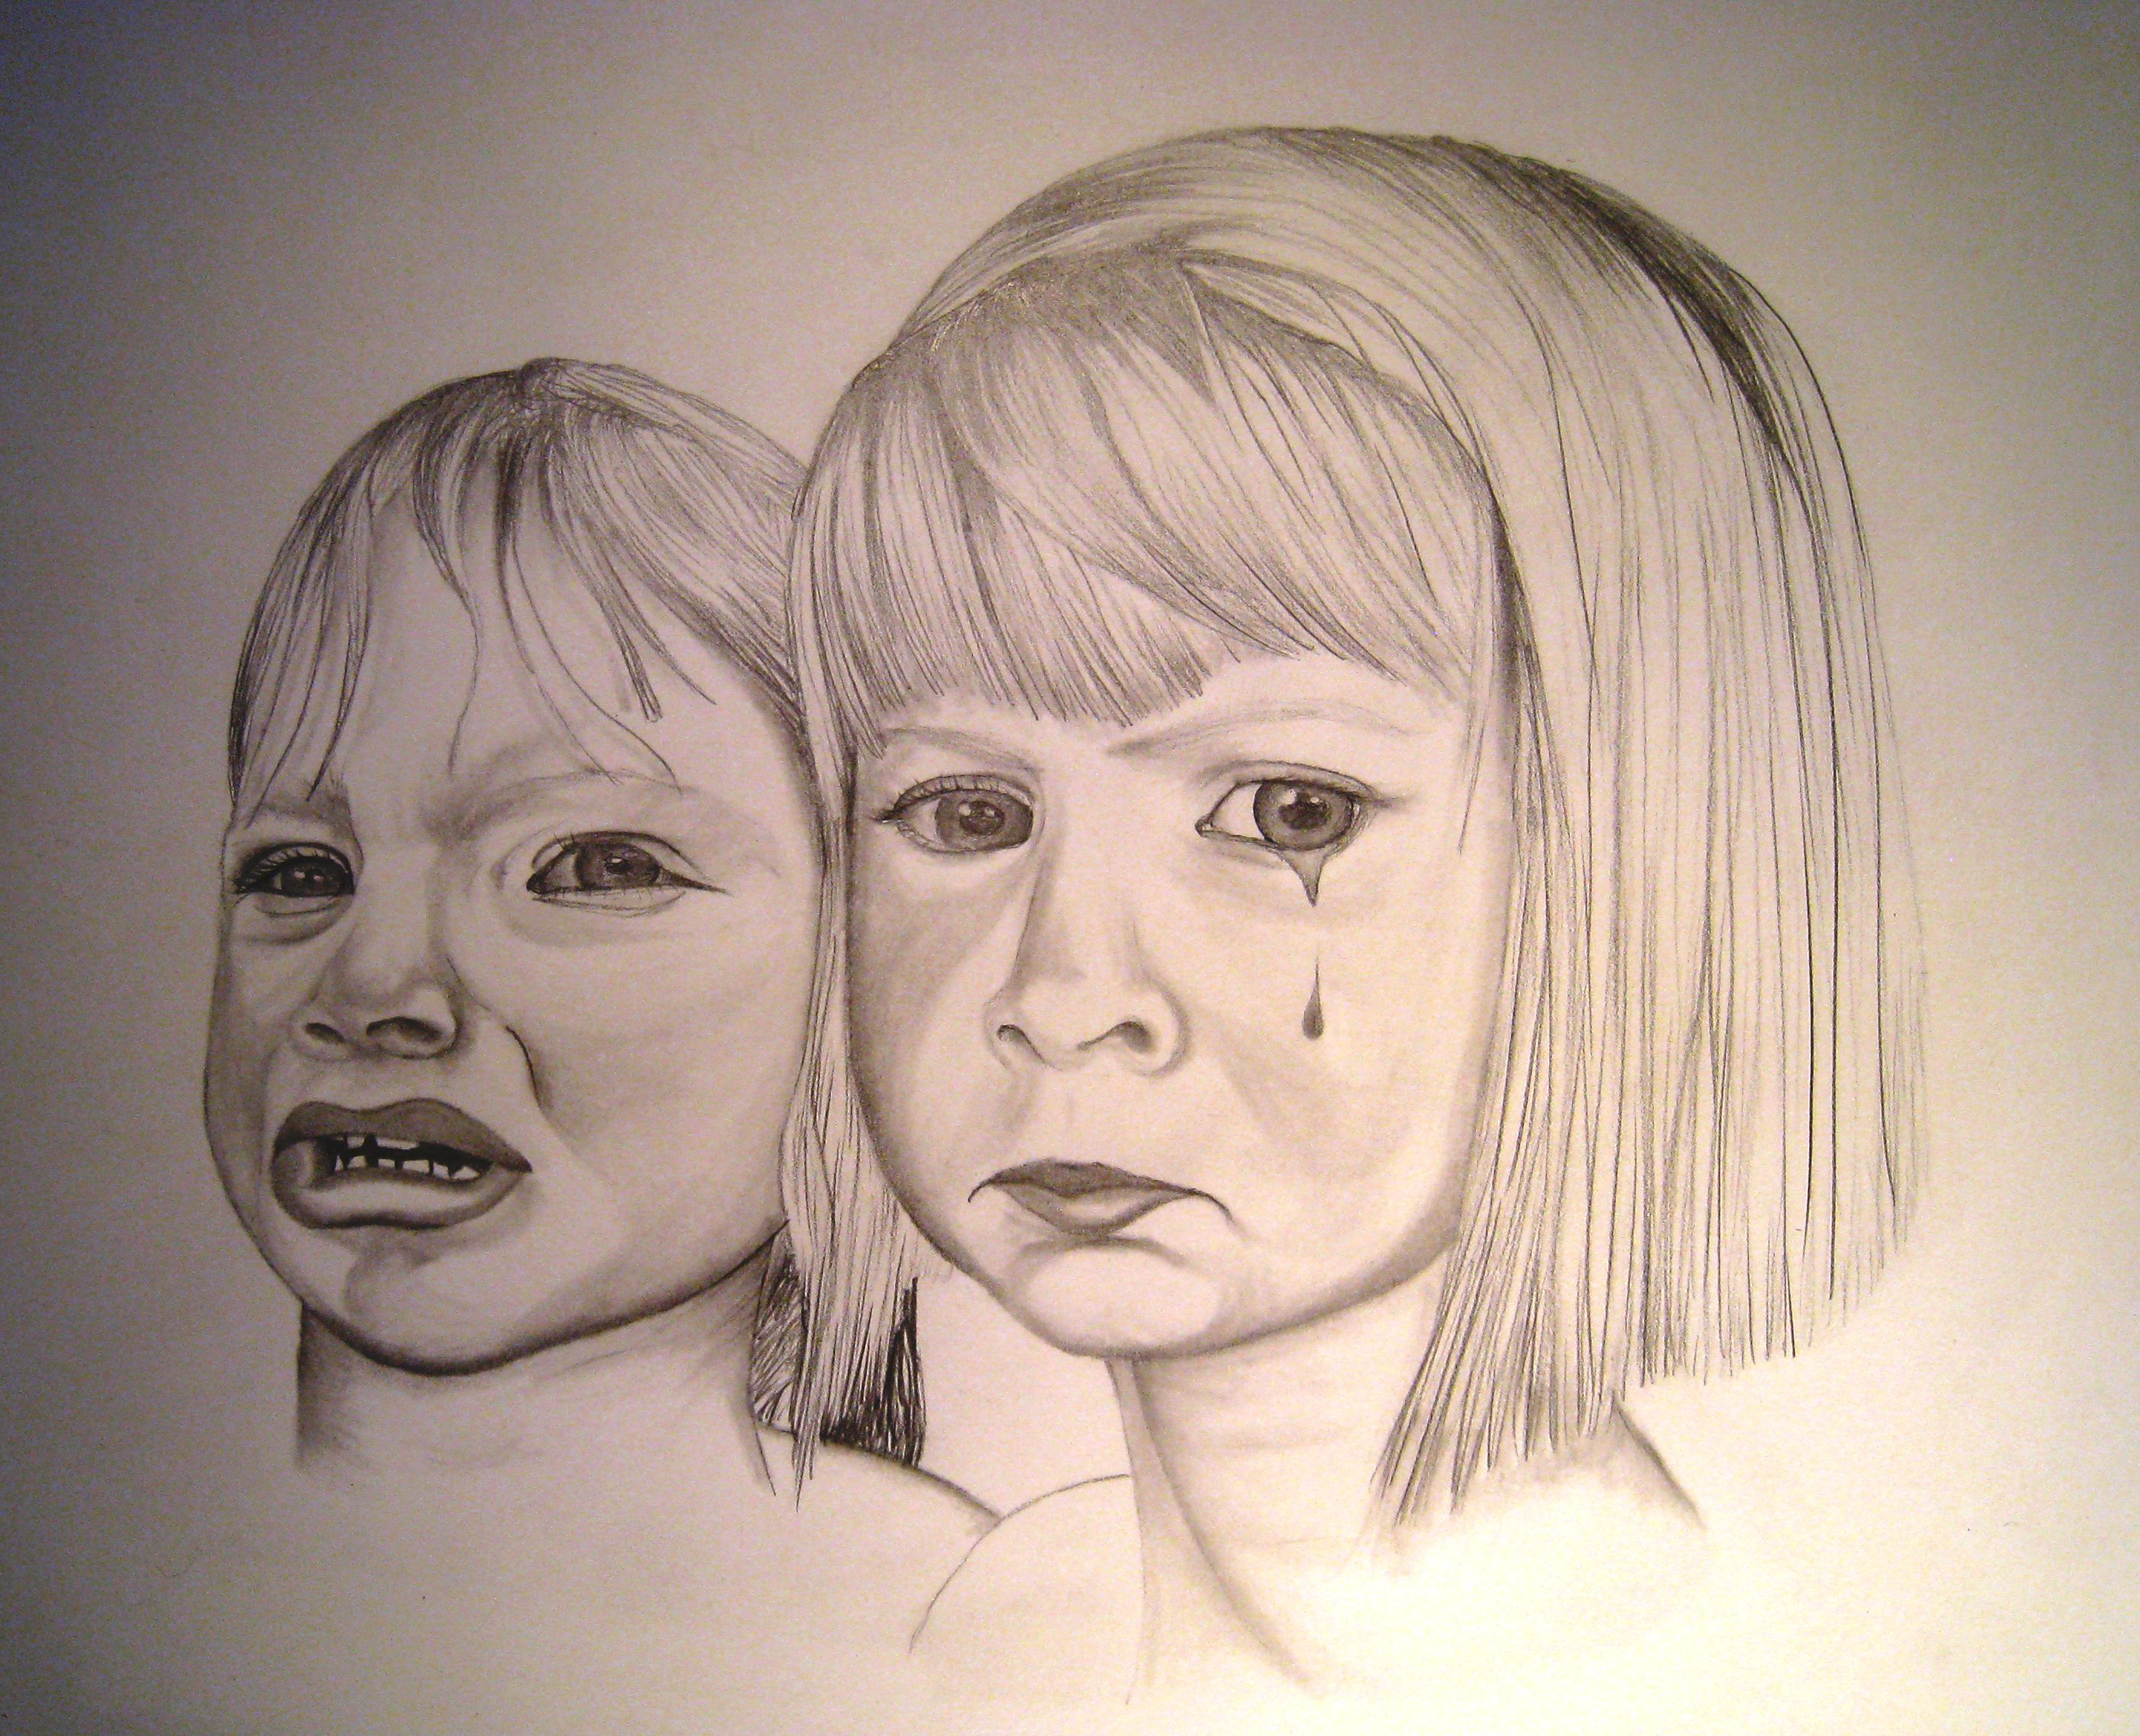 Crying Child Face Draw...